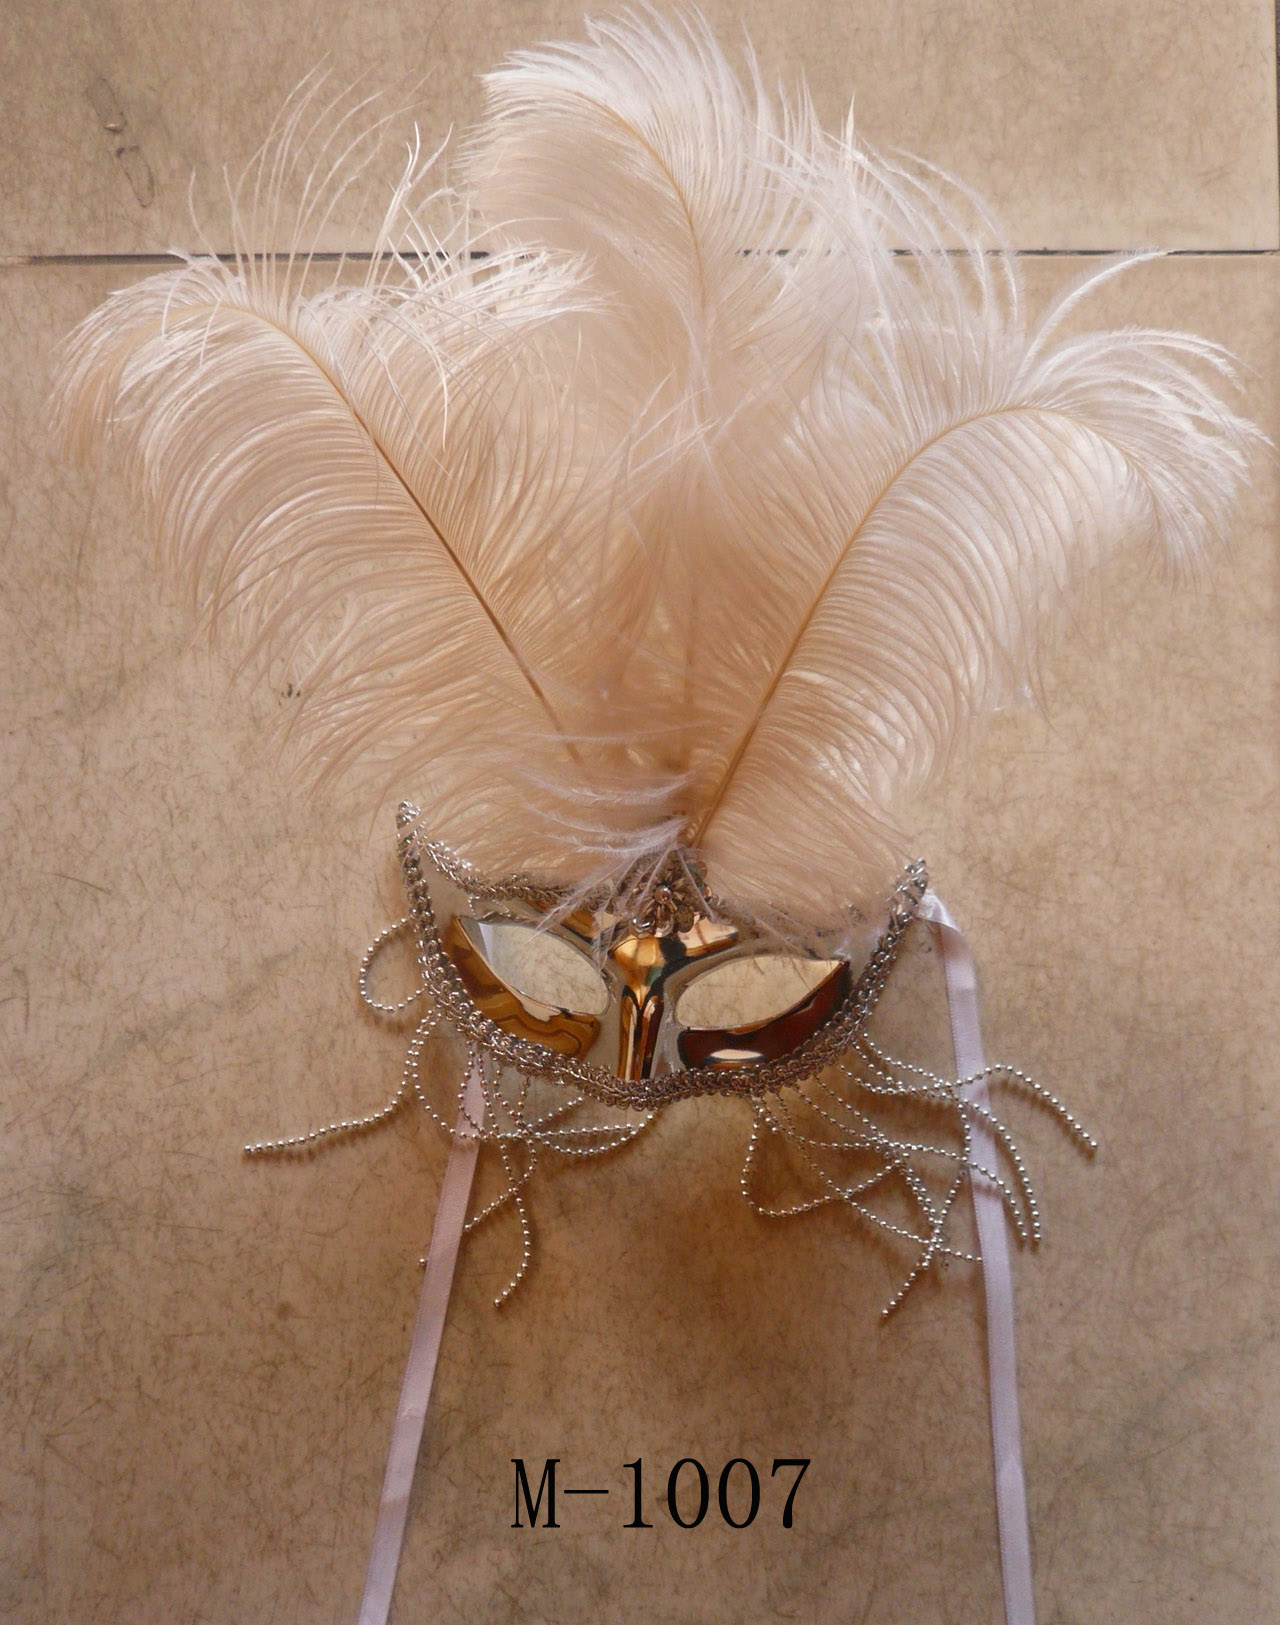 Cheap feather masks for sale - Made in China M-1007